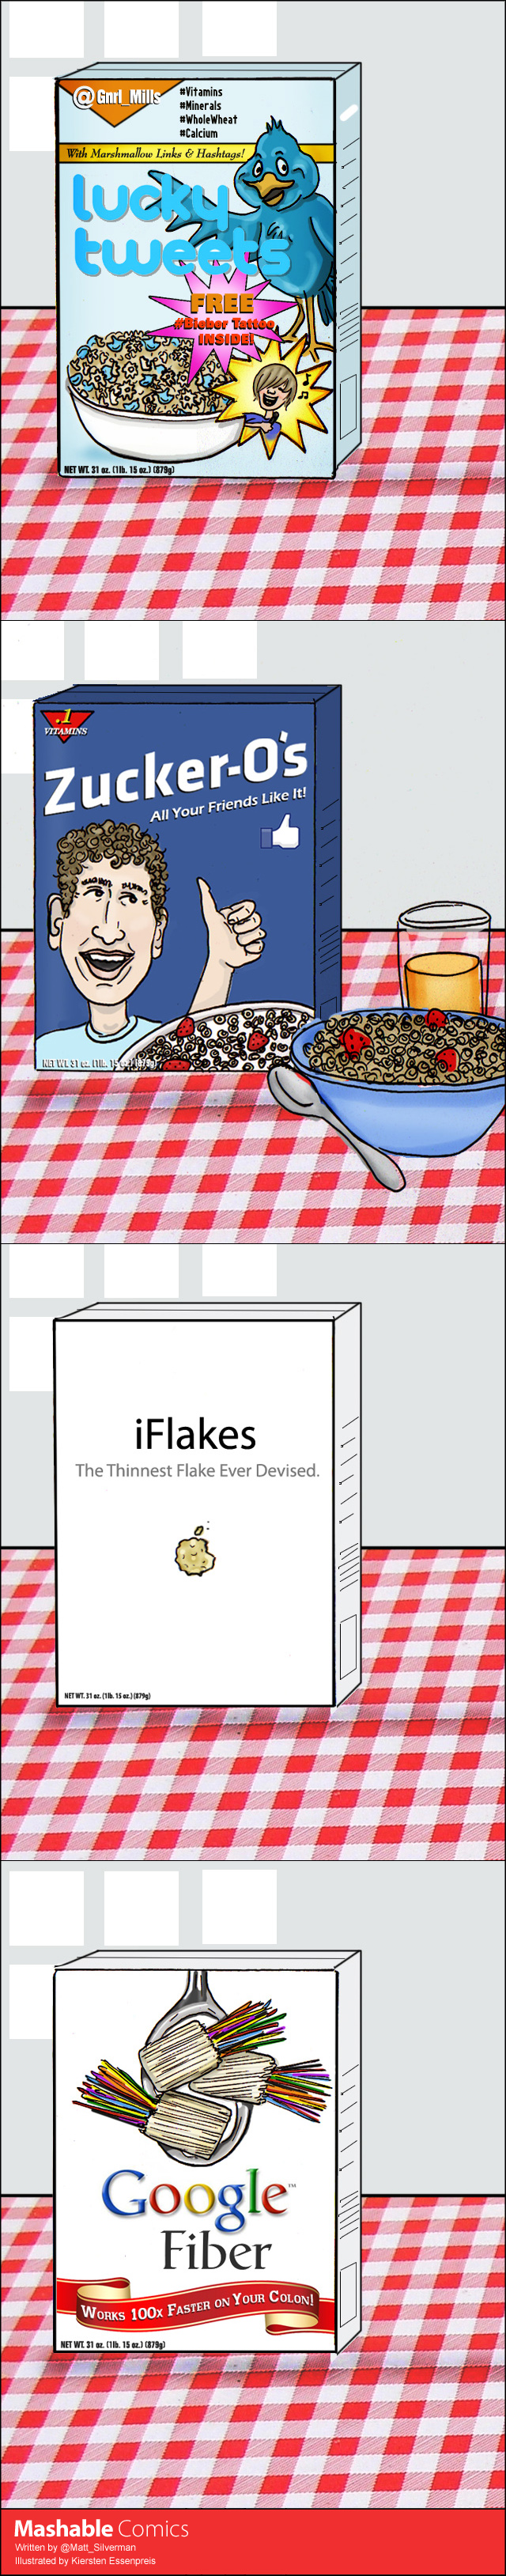 tech cereal mashable comic 640 1